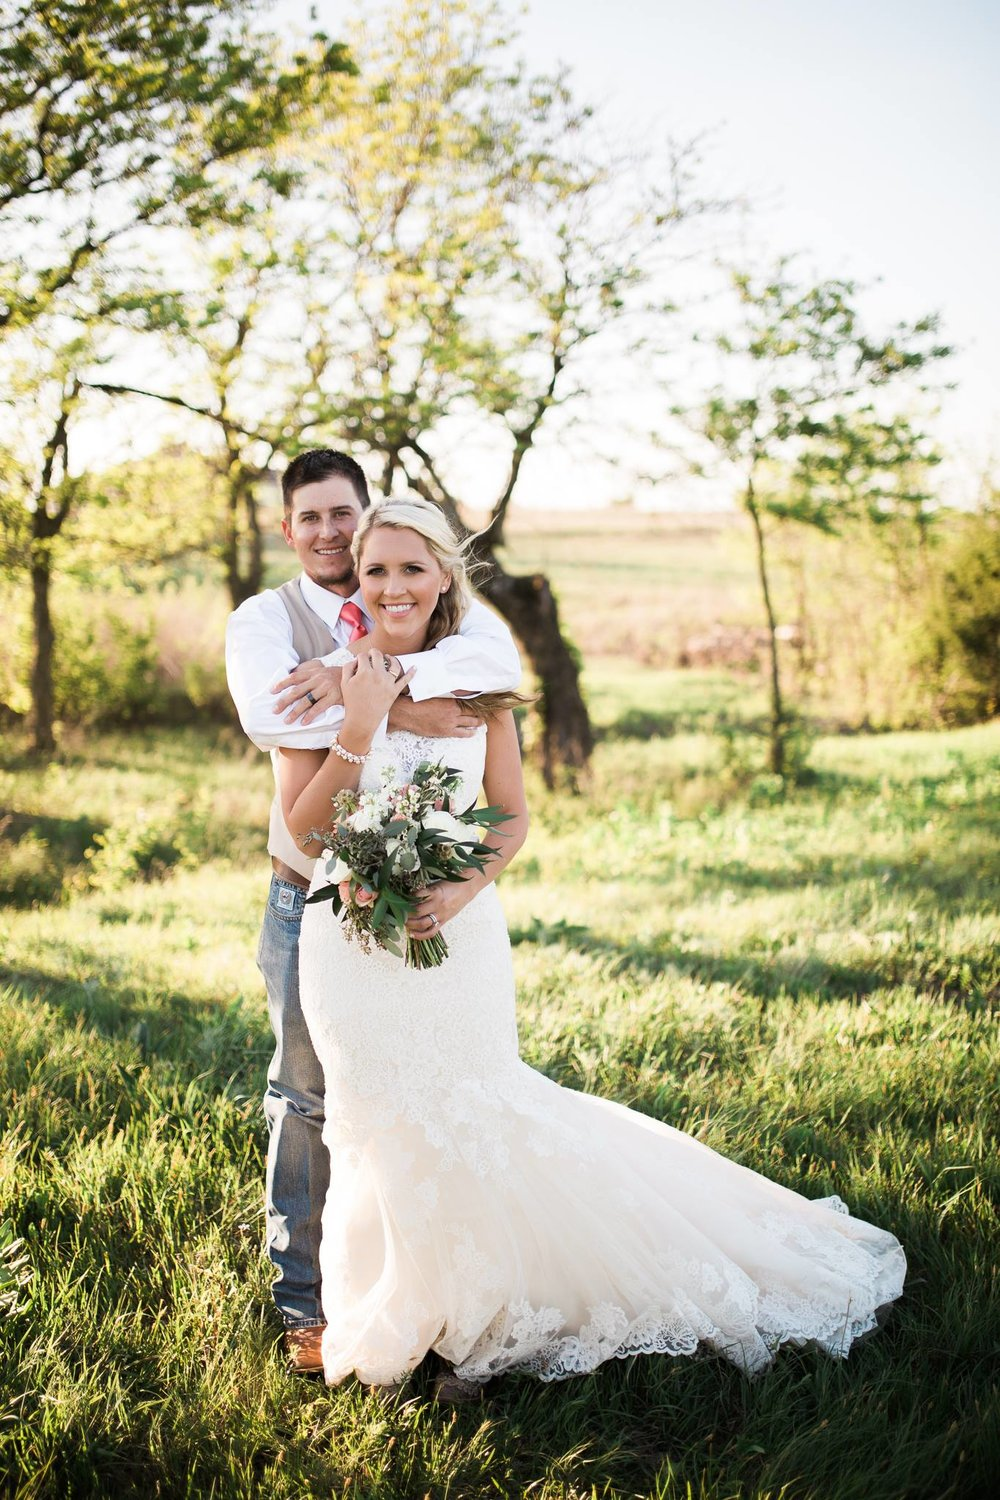 Jessica + Justin - The Big White Barn